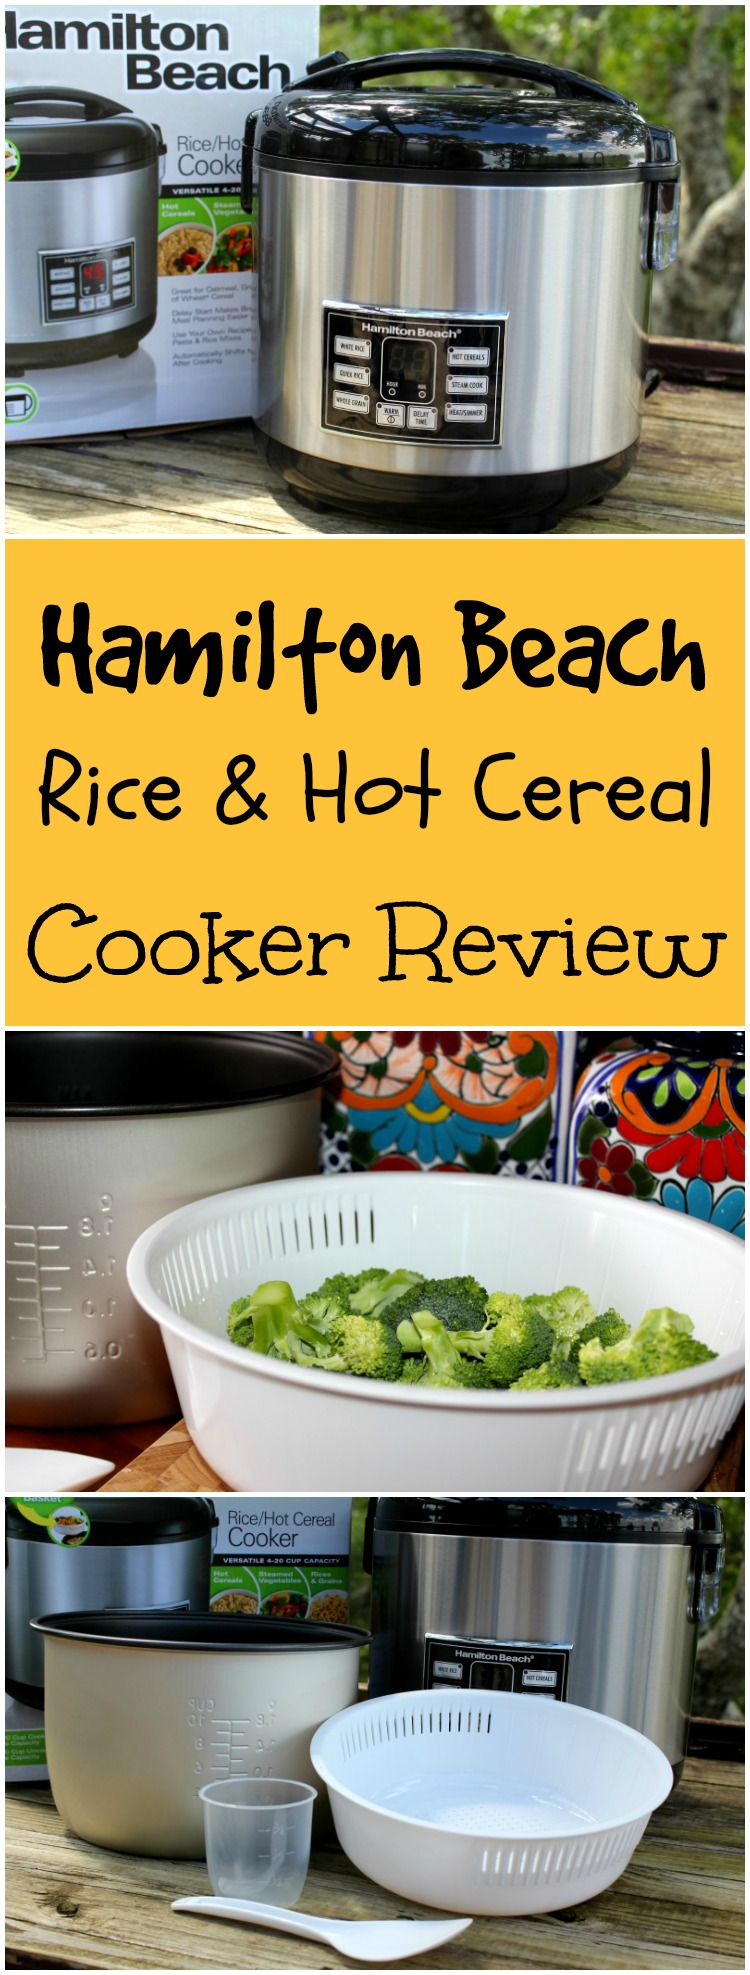 hamilton-beach-rice-and-hot-cereal-cooker-review